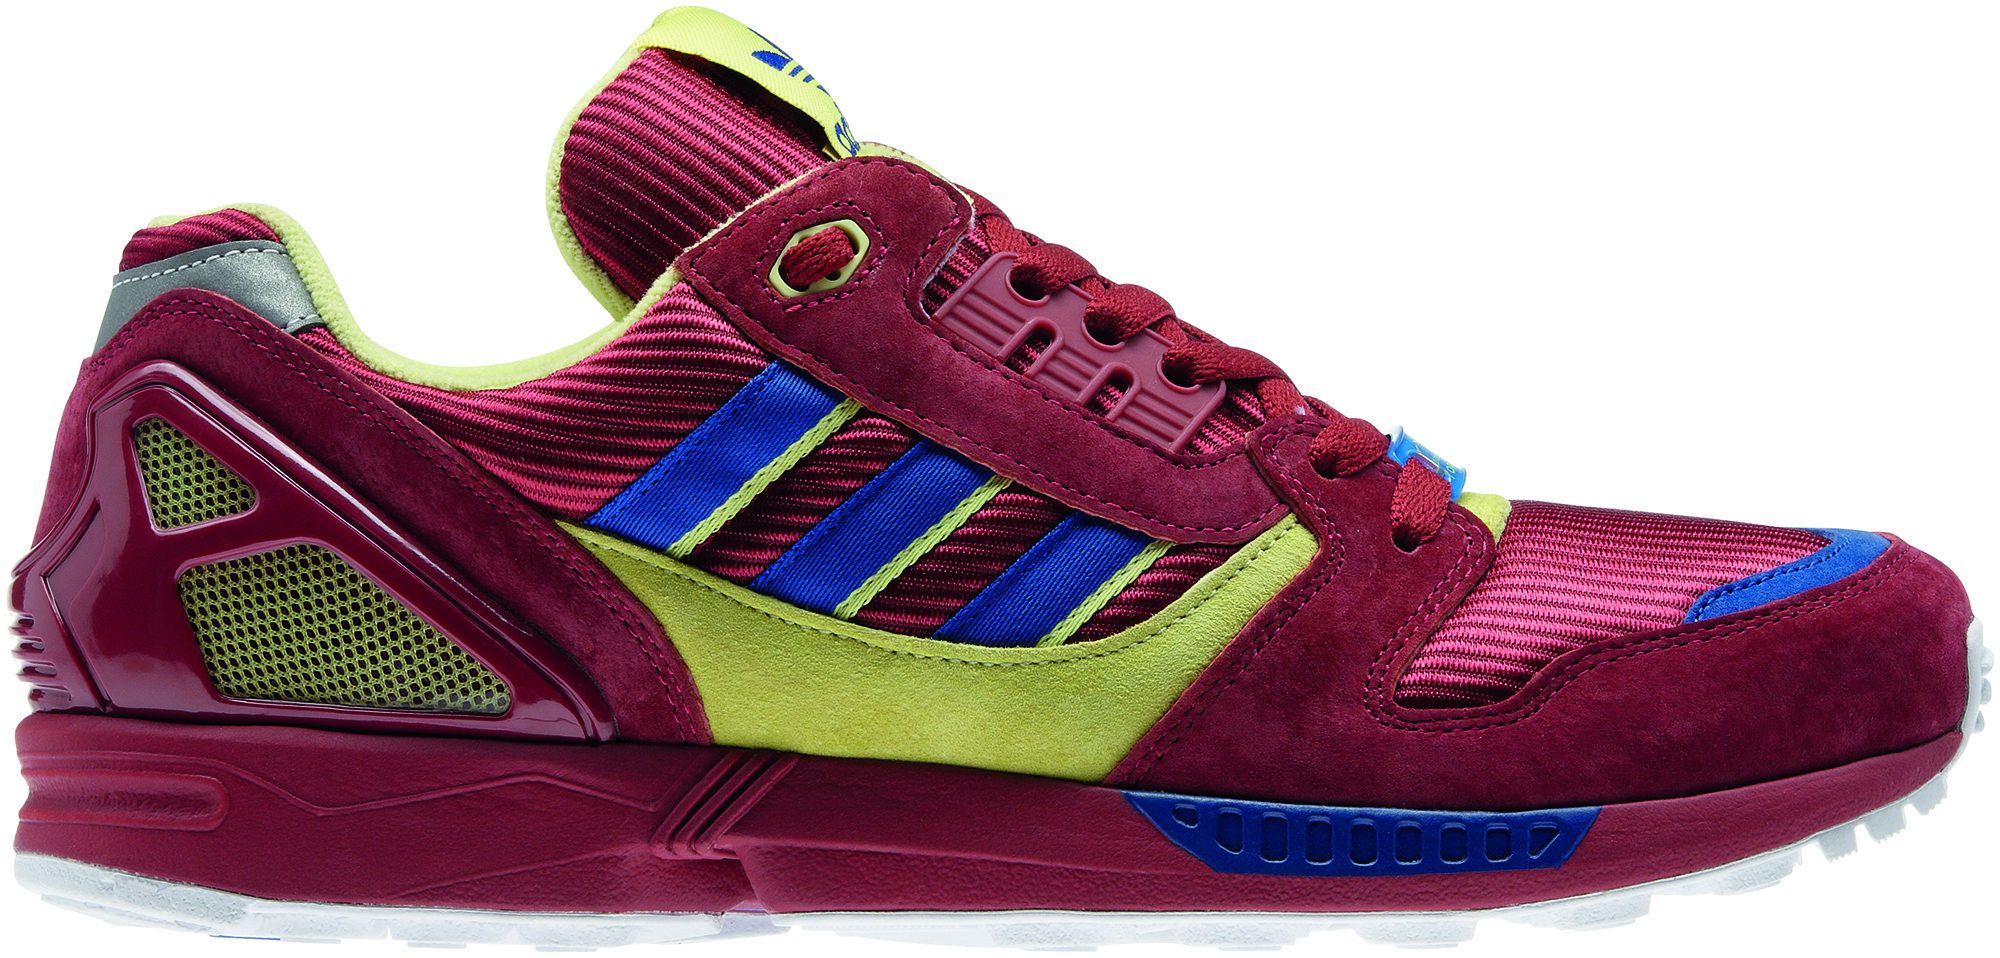 adidas Originals ZX 000 25th Anniversary 11